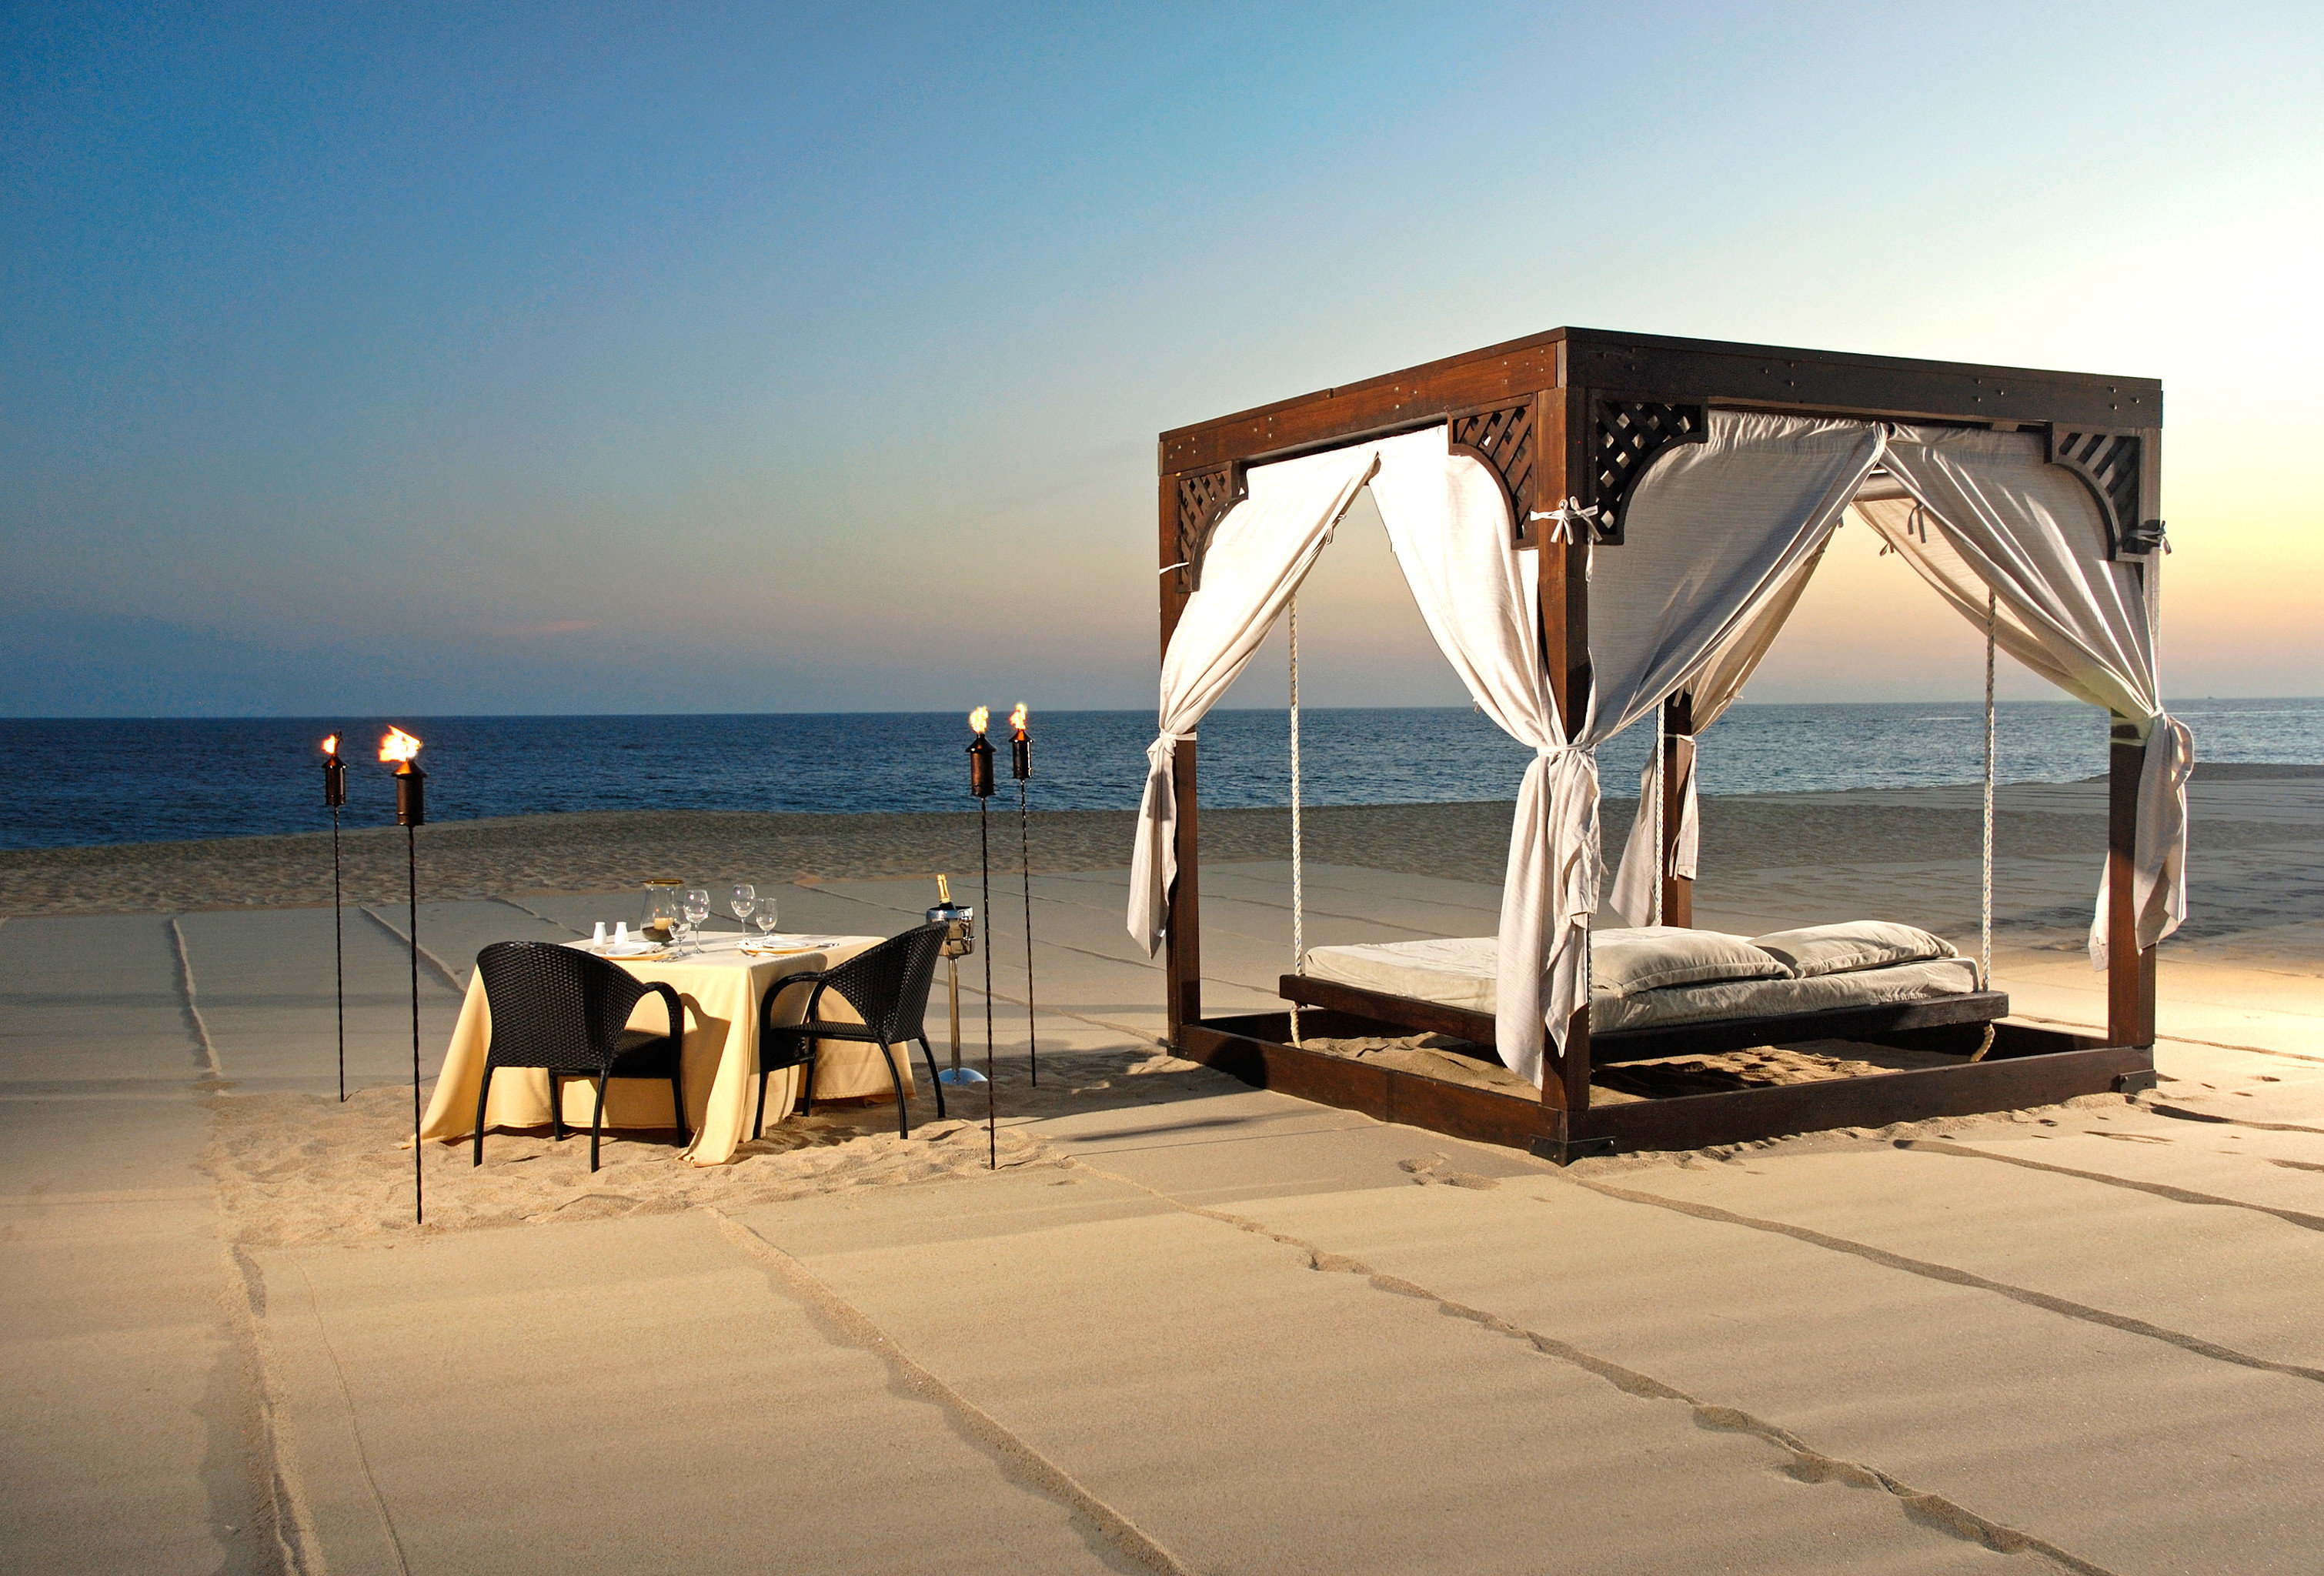 Adult-only All-inclusive Beach Dining Drink Eat Honeymoon Romance Romantic Tropical Waterfront sky Ocean Sea Architecture Coast walkway pier dock shore sandy day